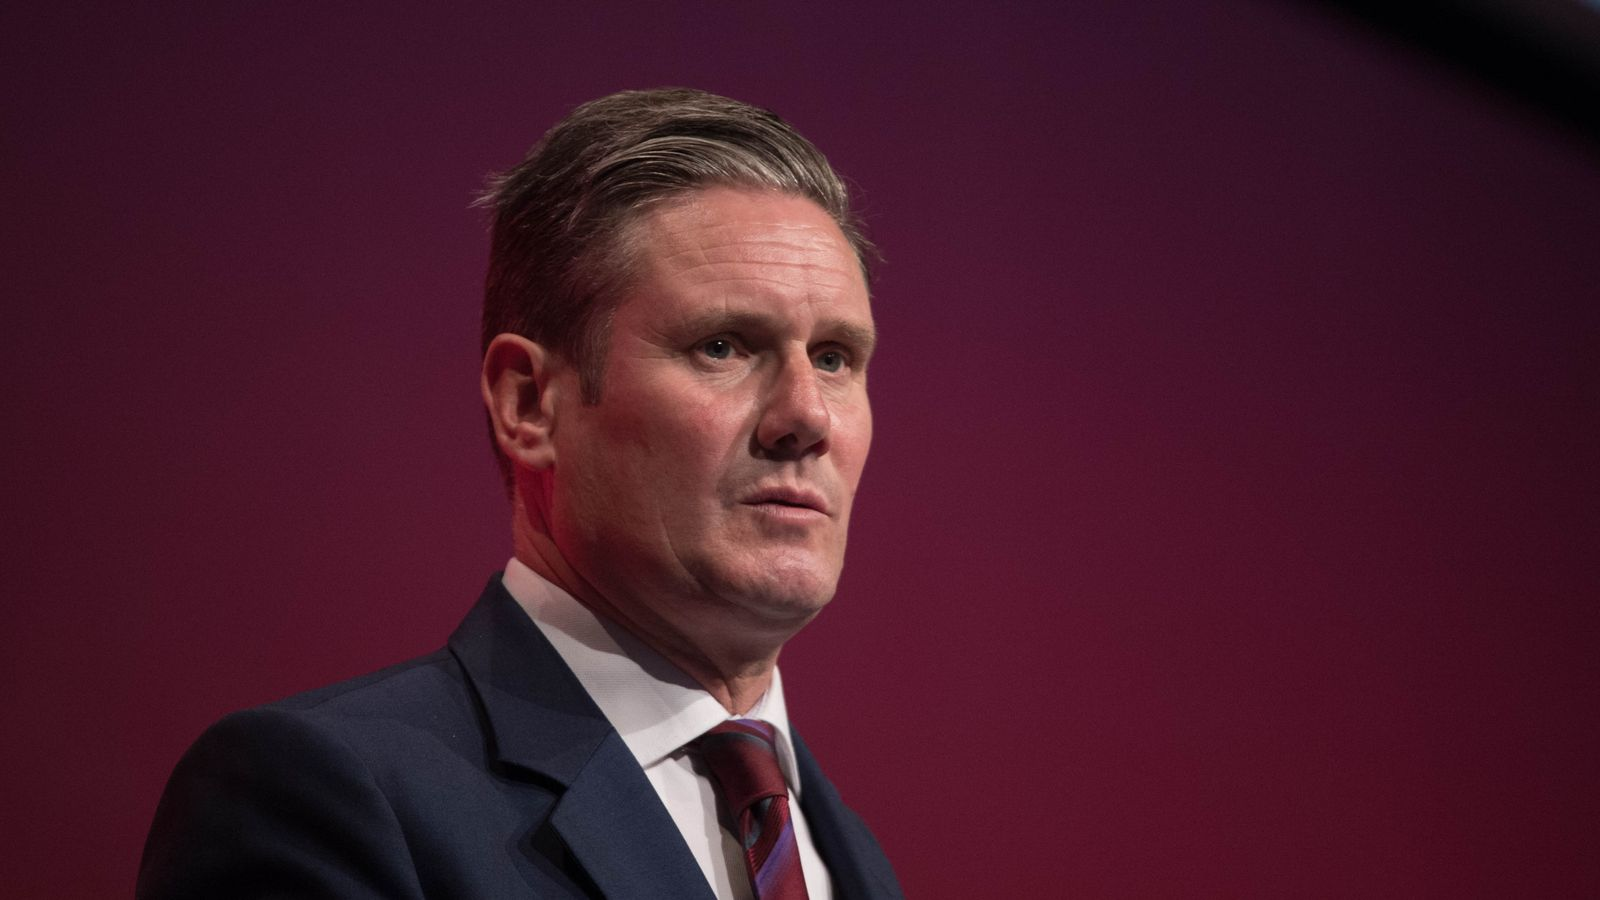 Keir Starmer calls for 'easy movement' after Brexit to keep UK 'aligned' with EU